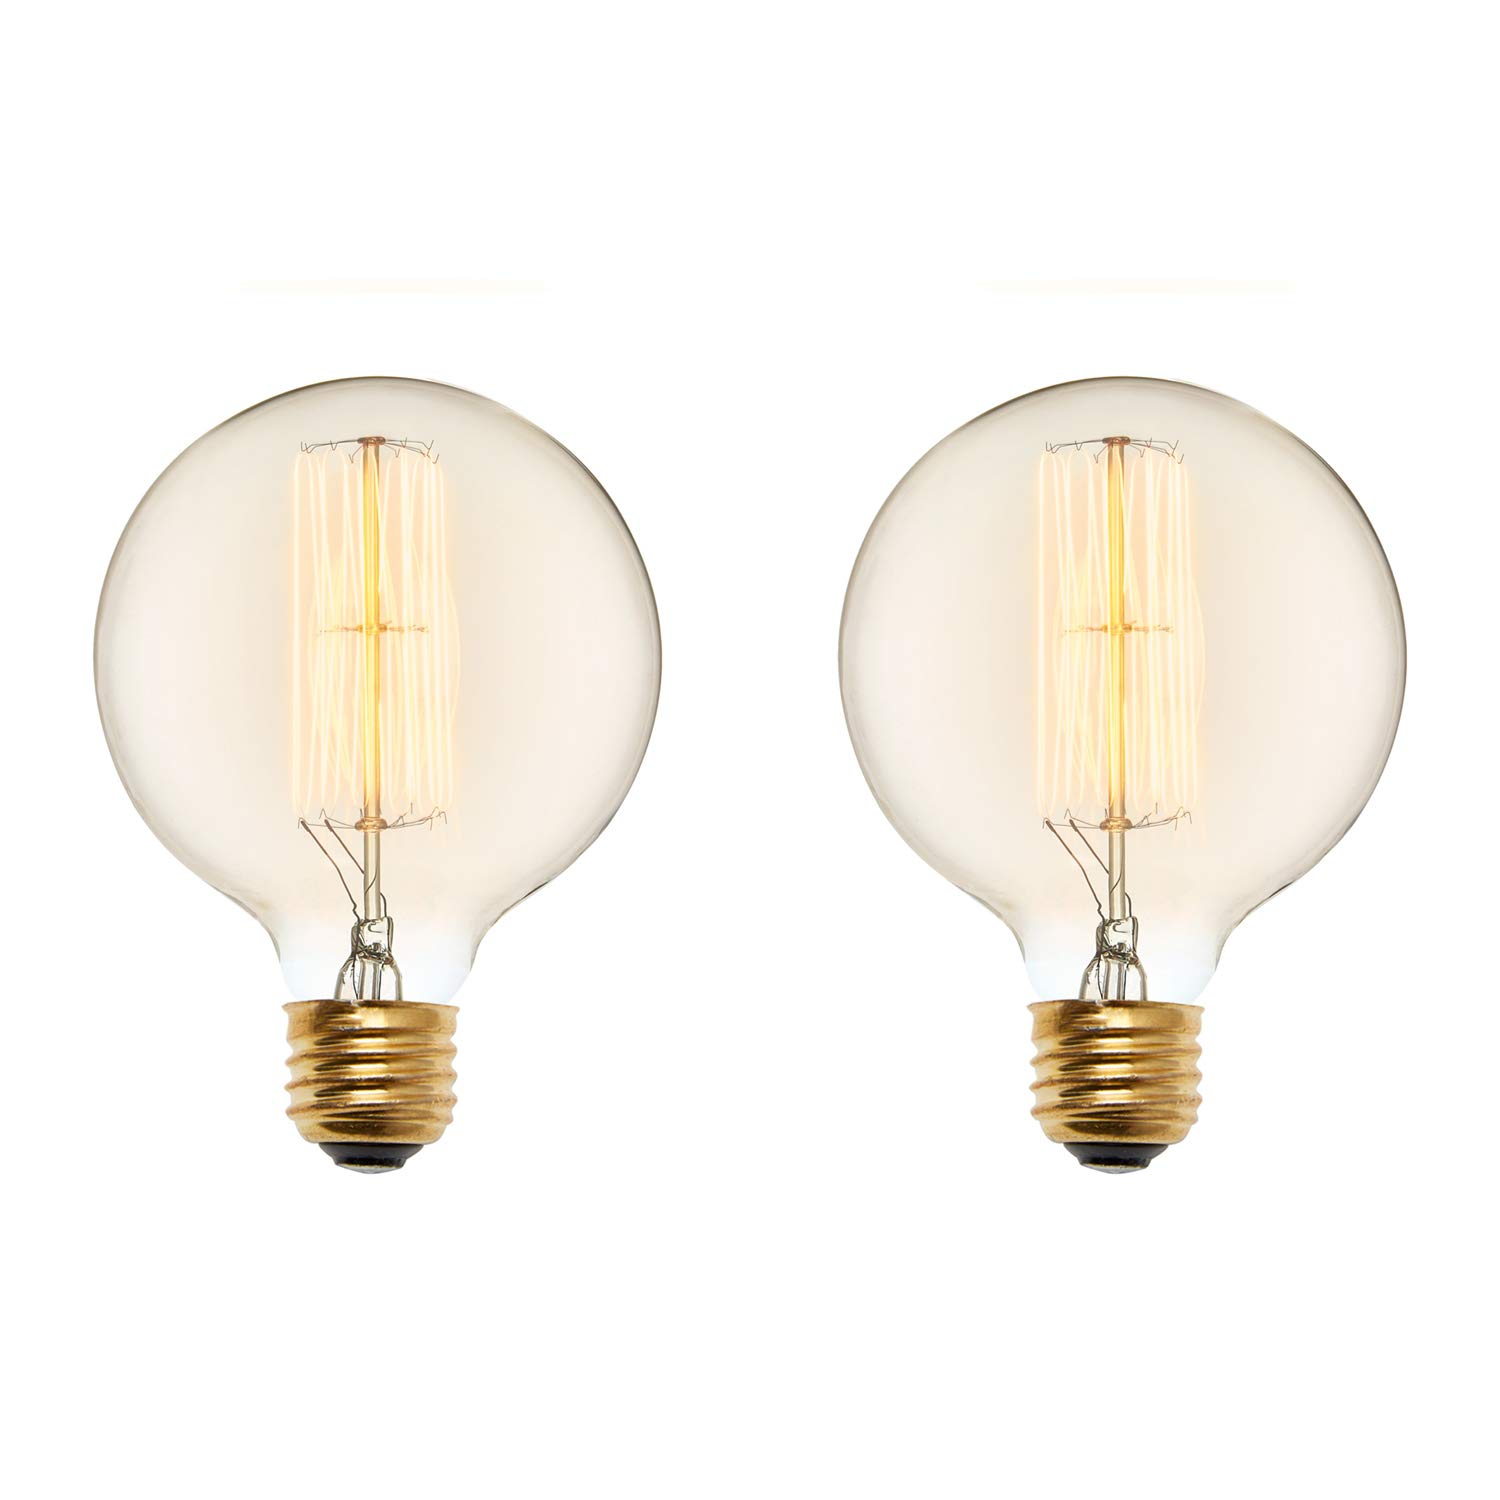 2 G40 Vintage Bedford Bulbs, Warm White, Dimmable, Cage Filament, 40W (E26)